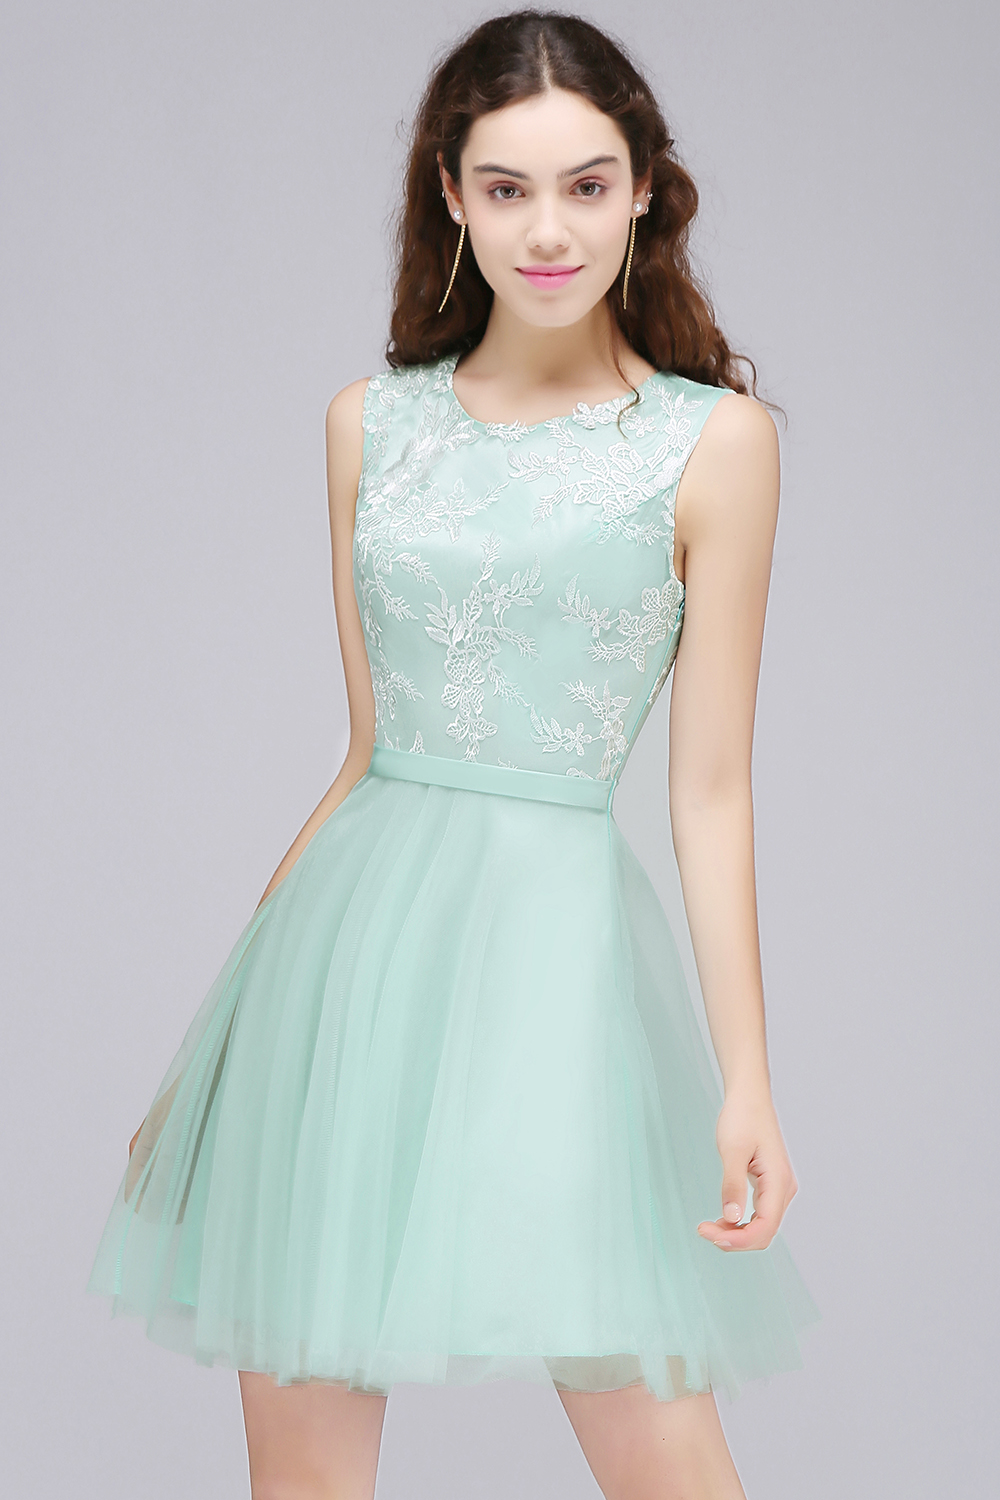 Aliexpress.com : Buy MisShow Real Image Pink Lace Appliques Mini ...